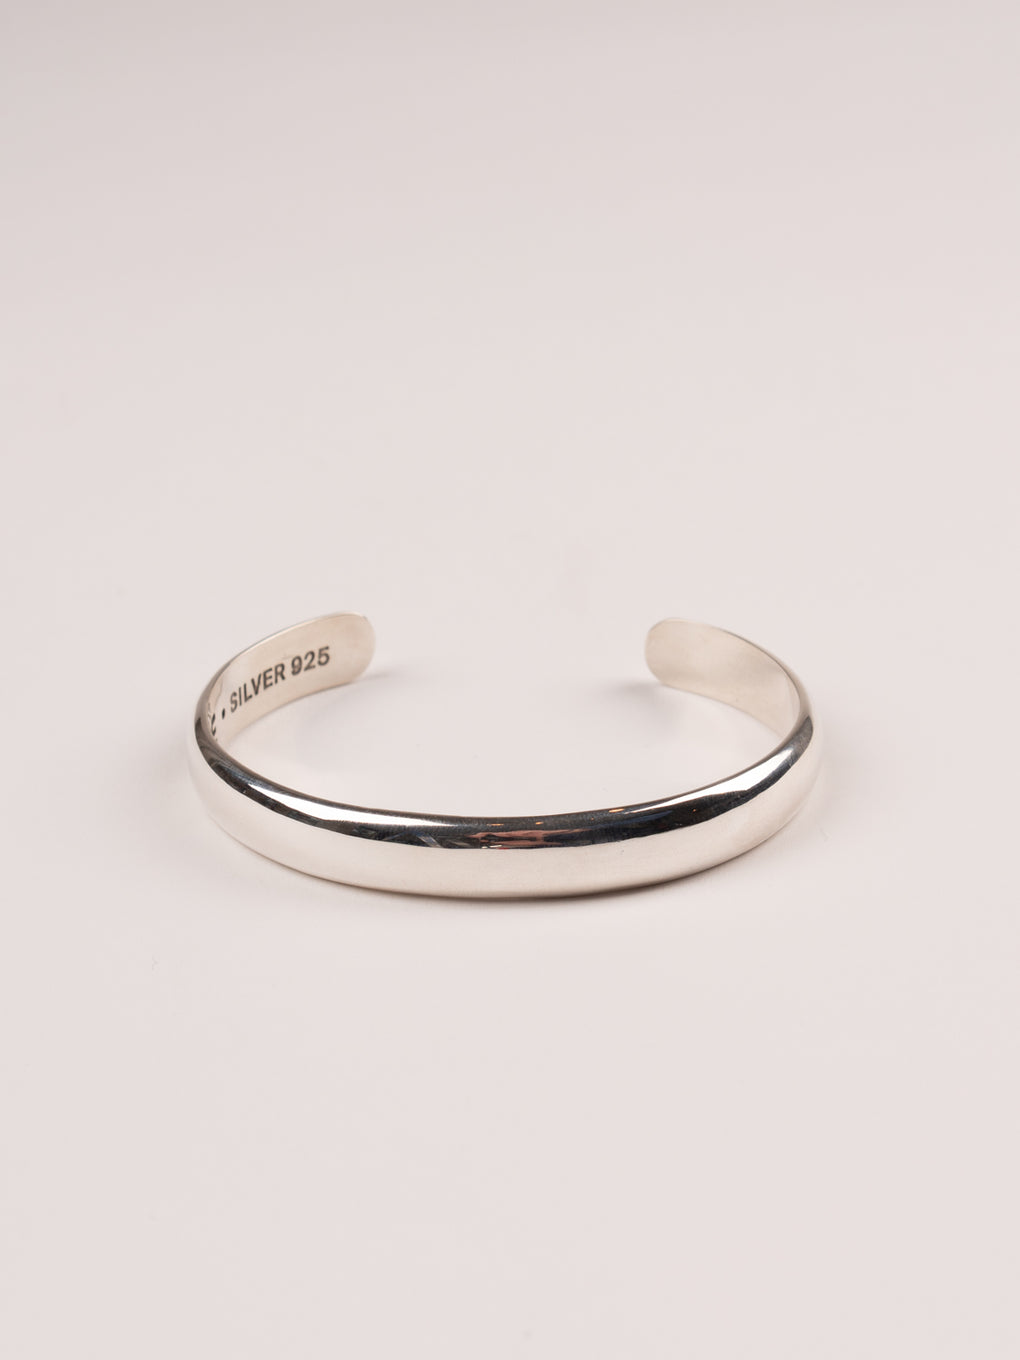 mens silver jewelry, mens bangle with pinstripe detail at cuff, silver 925 - MAPLE